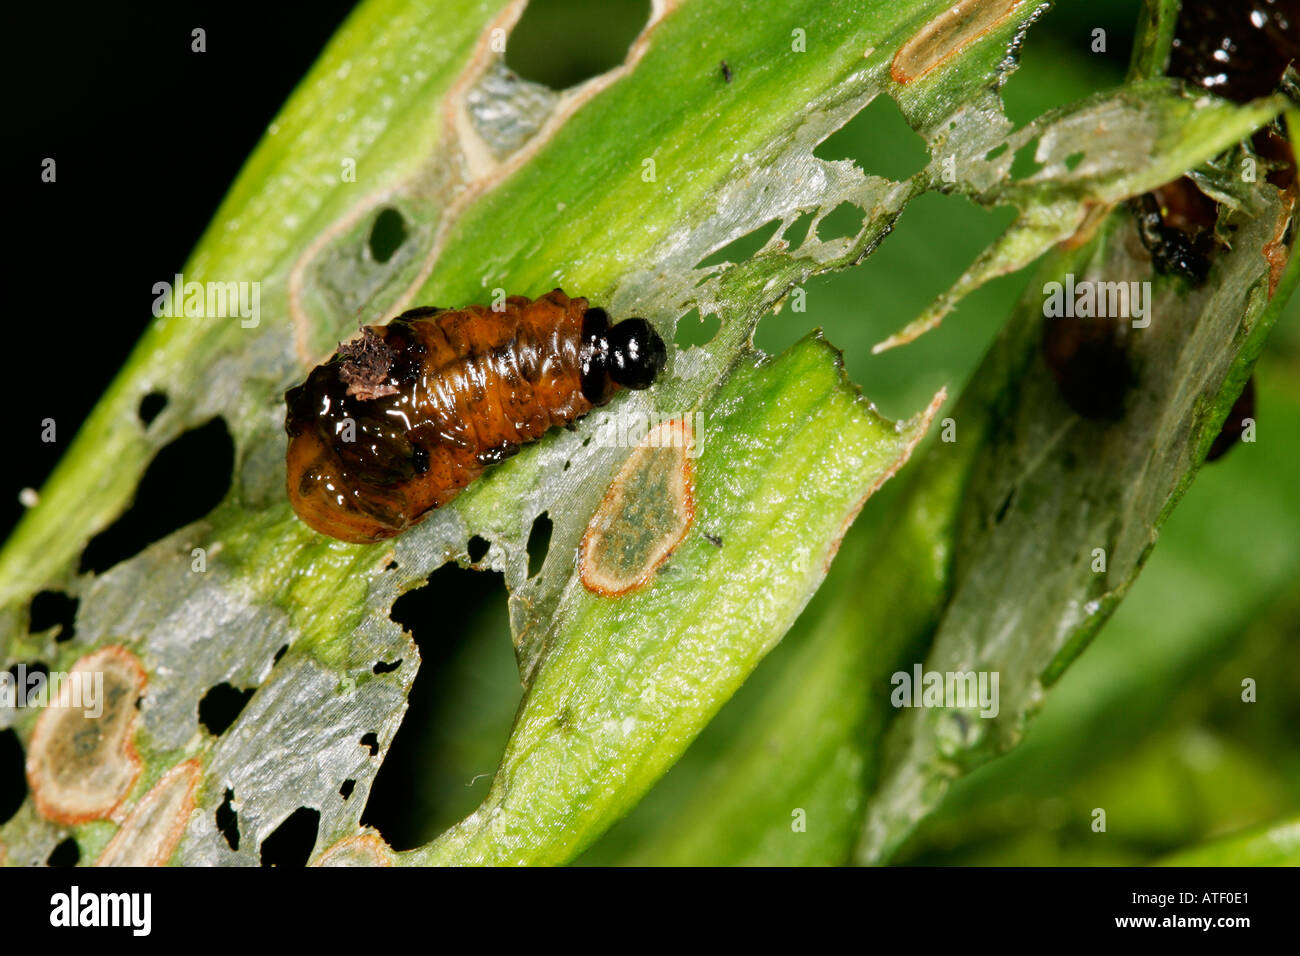 Lilly Beetle Liloceris lili Larvae covered in feces on lilly stem potton bedfordshire - Stock Image